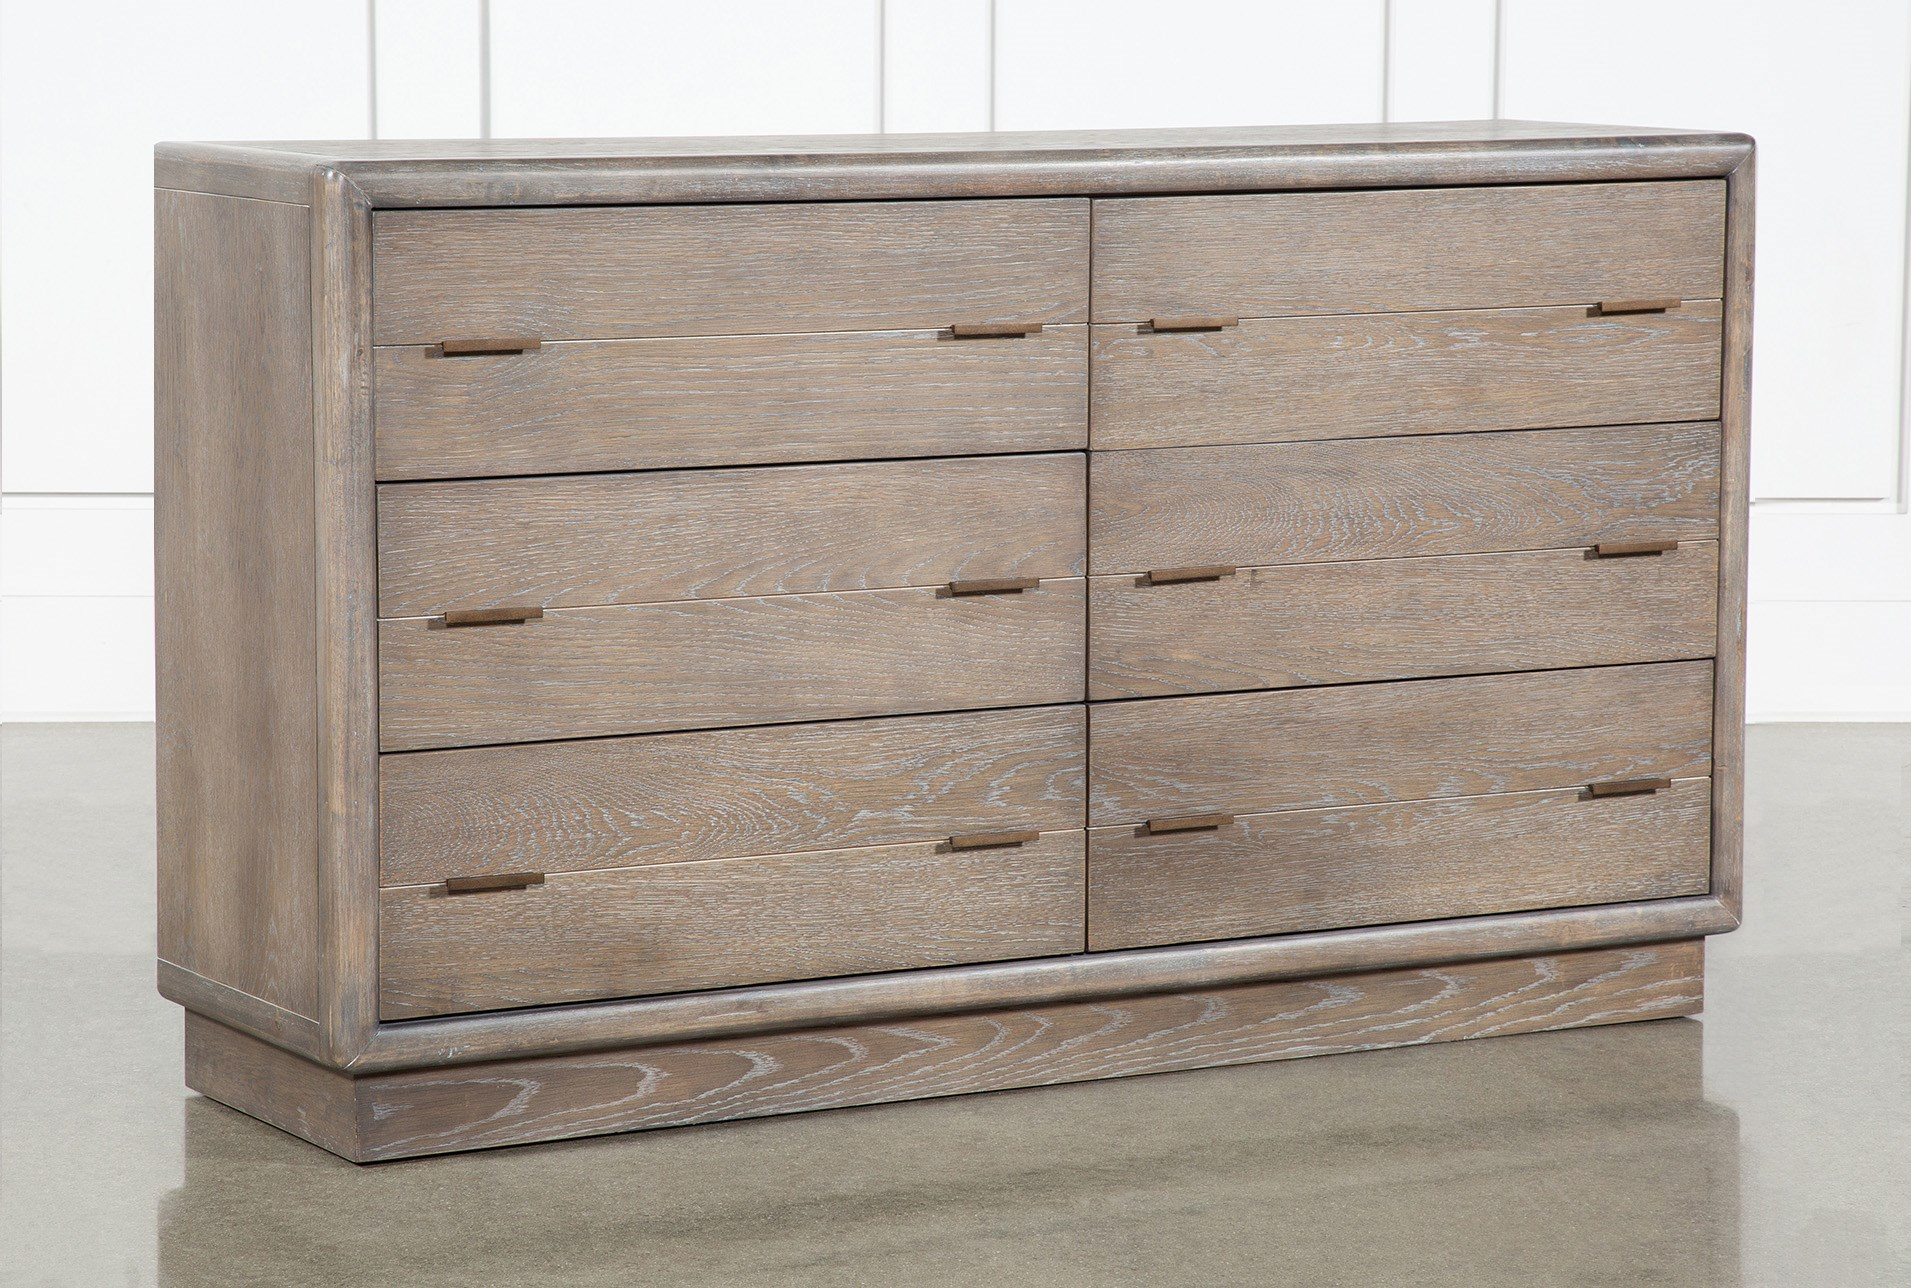 Pavilion Dresser By Nate Berkus And Jeremiah B Qty 1 Has Been Successfully Added To Your Cart